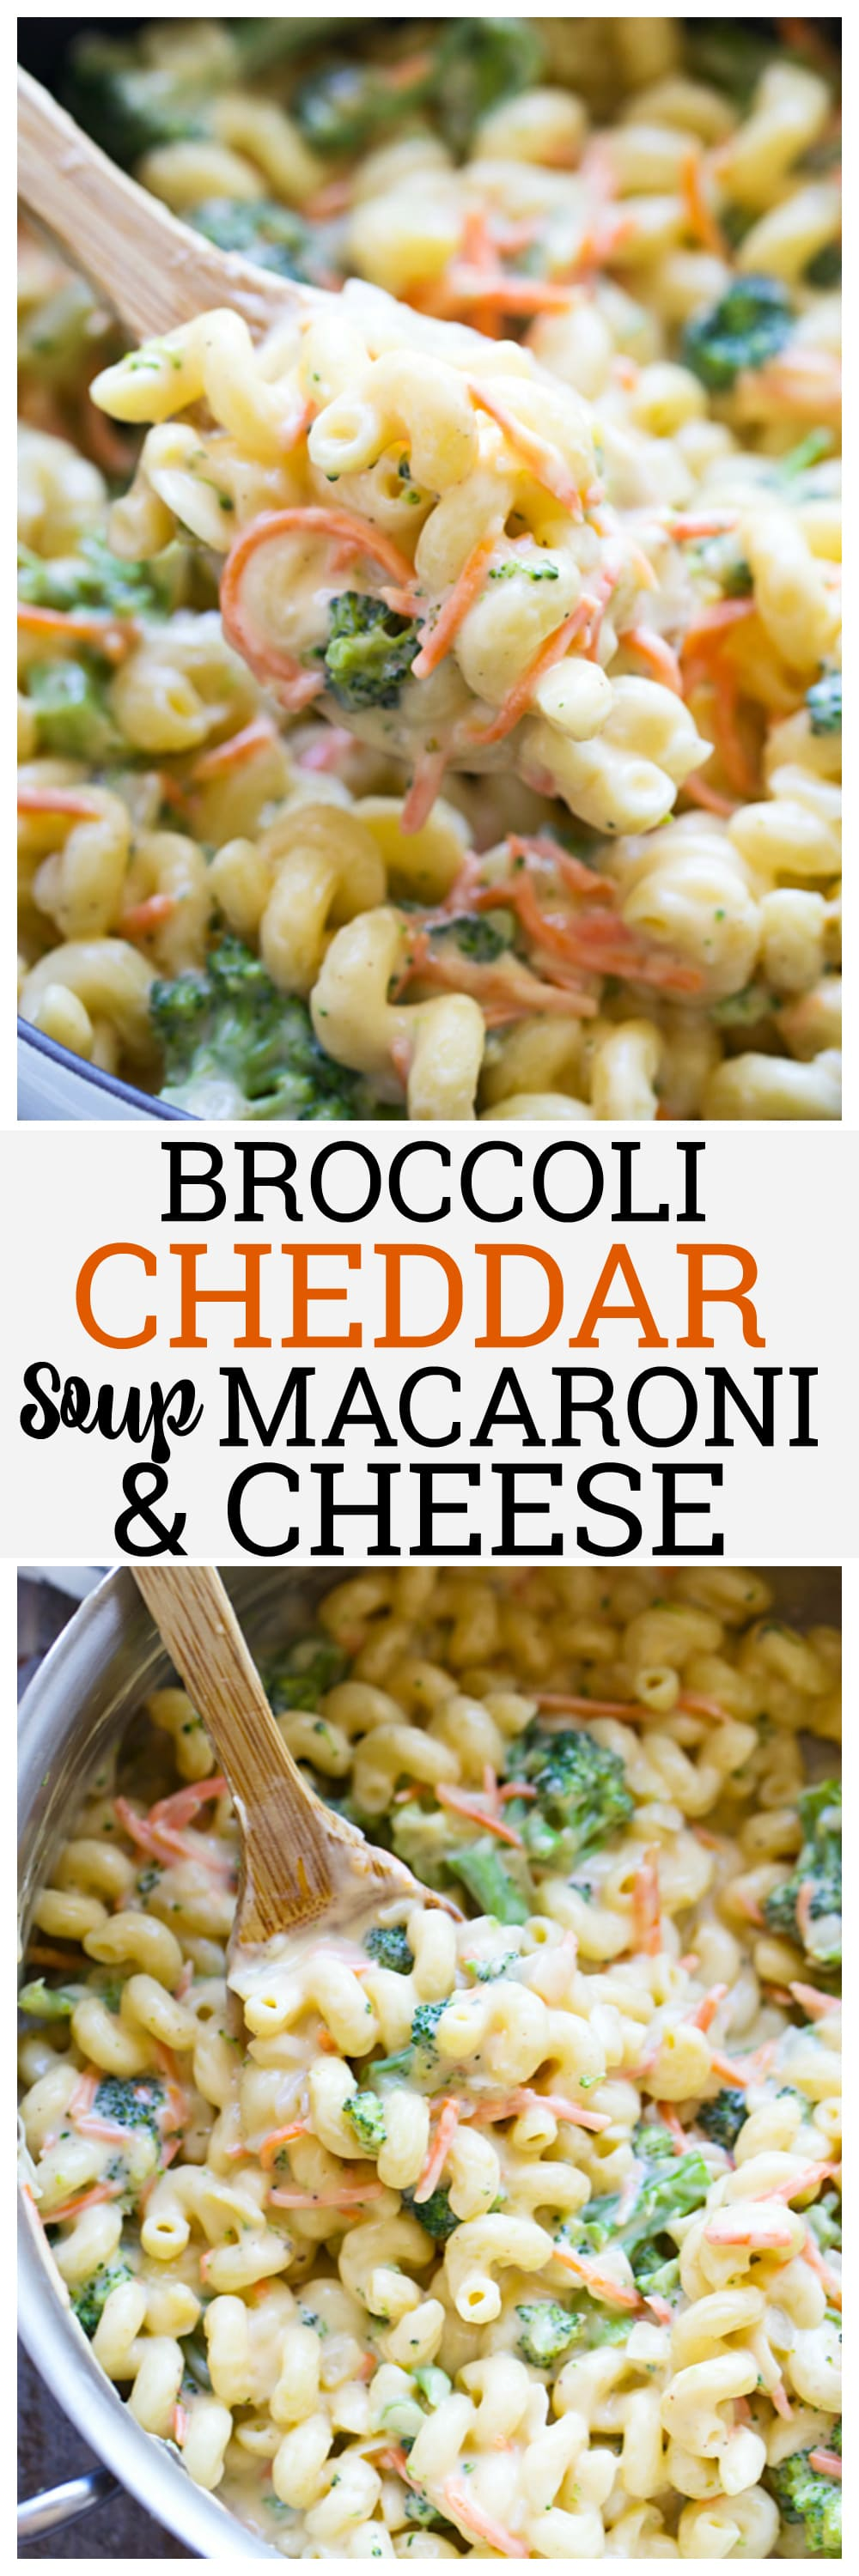 Broccoli Cheddar Soup Mac and Cheese - Your favorite cheesy broccoli soup in mac and cheese form!